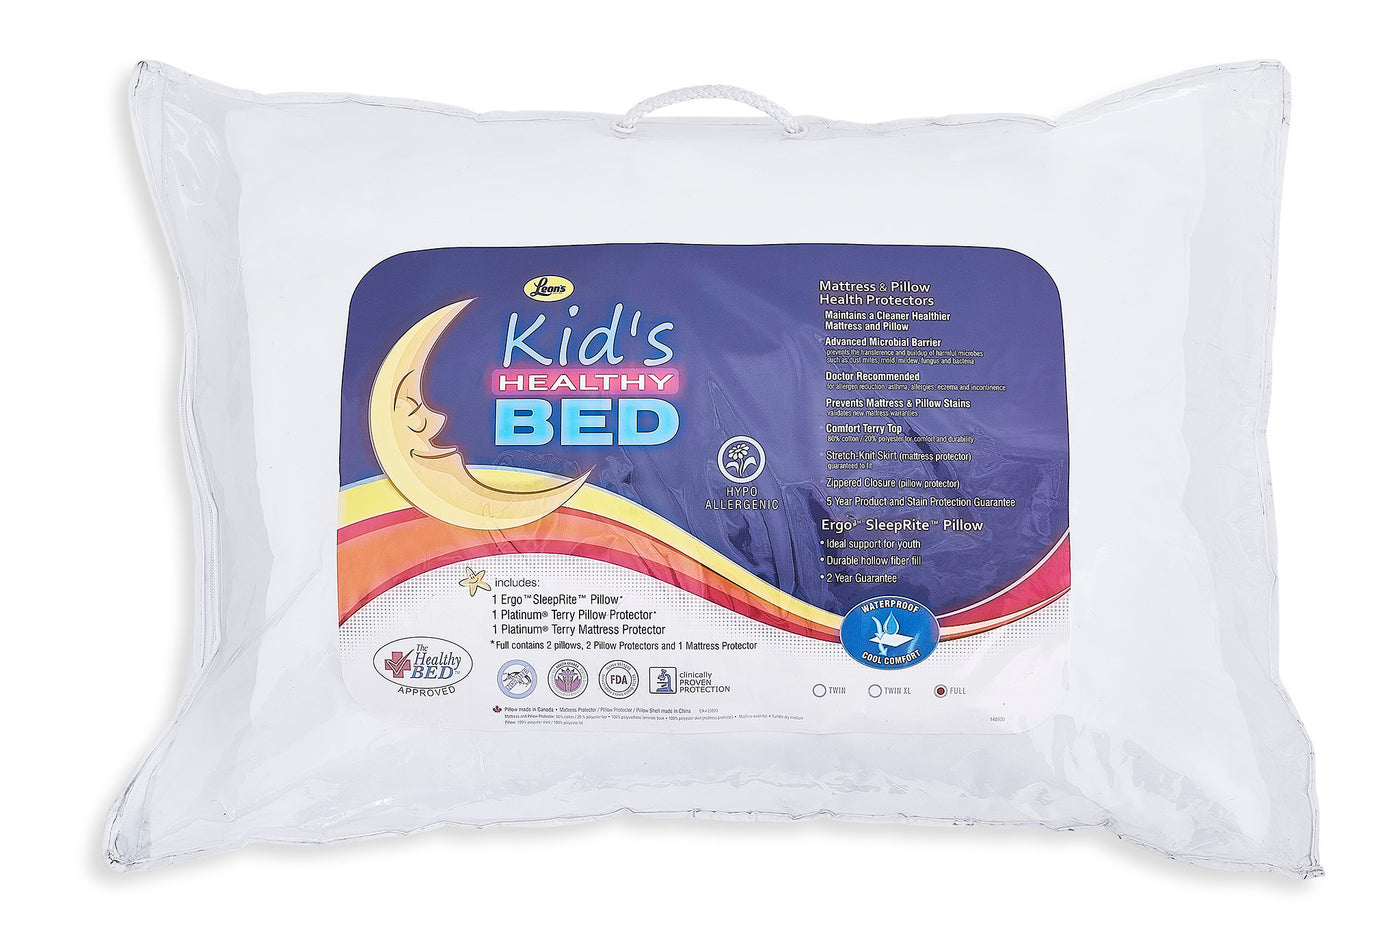 Kid S Healthy Bed 5 Piece Full Pillow Mattress And Pillow Health Protector Set Leon S